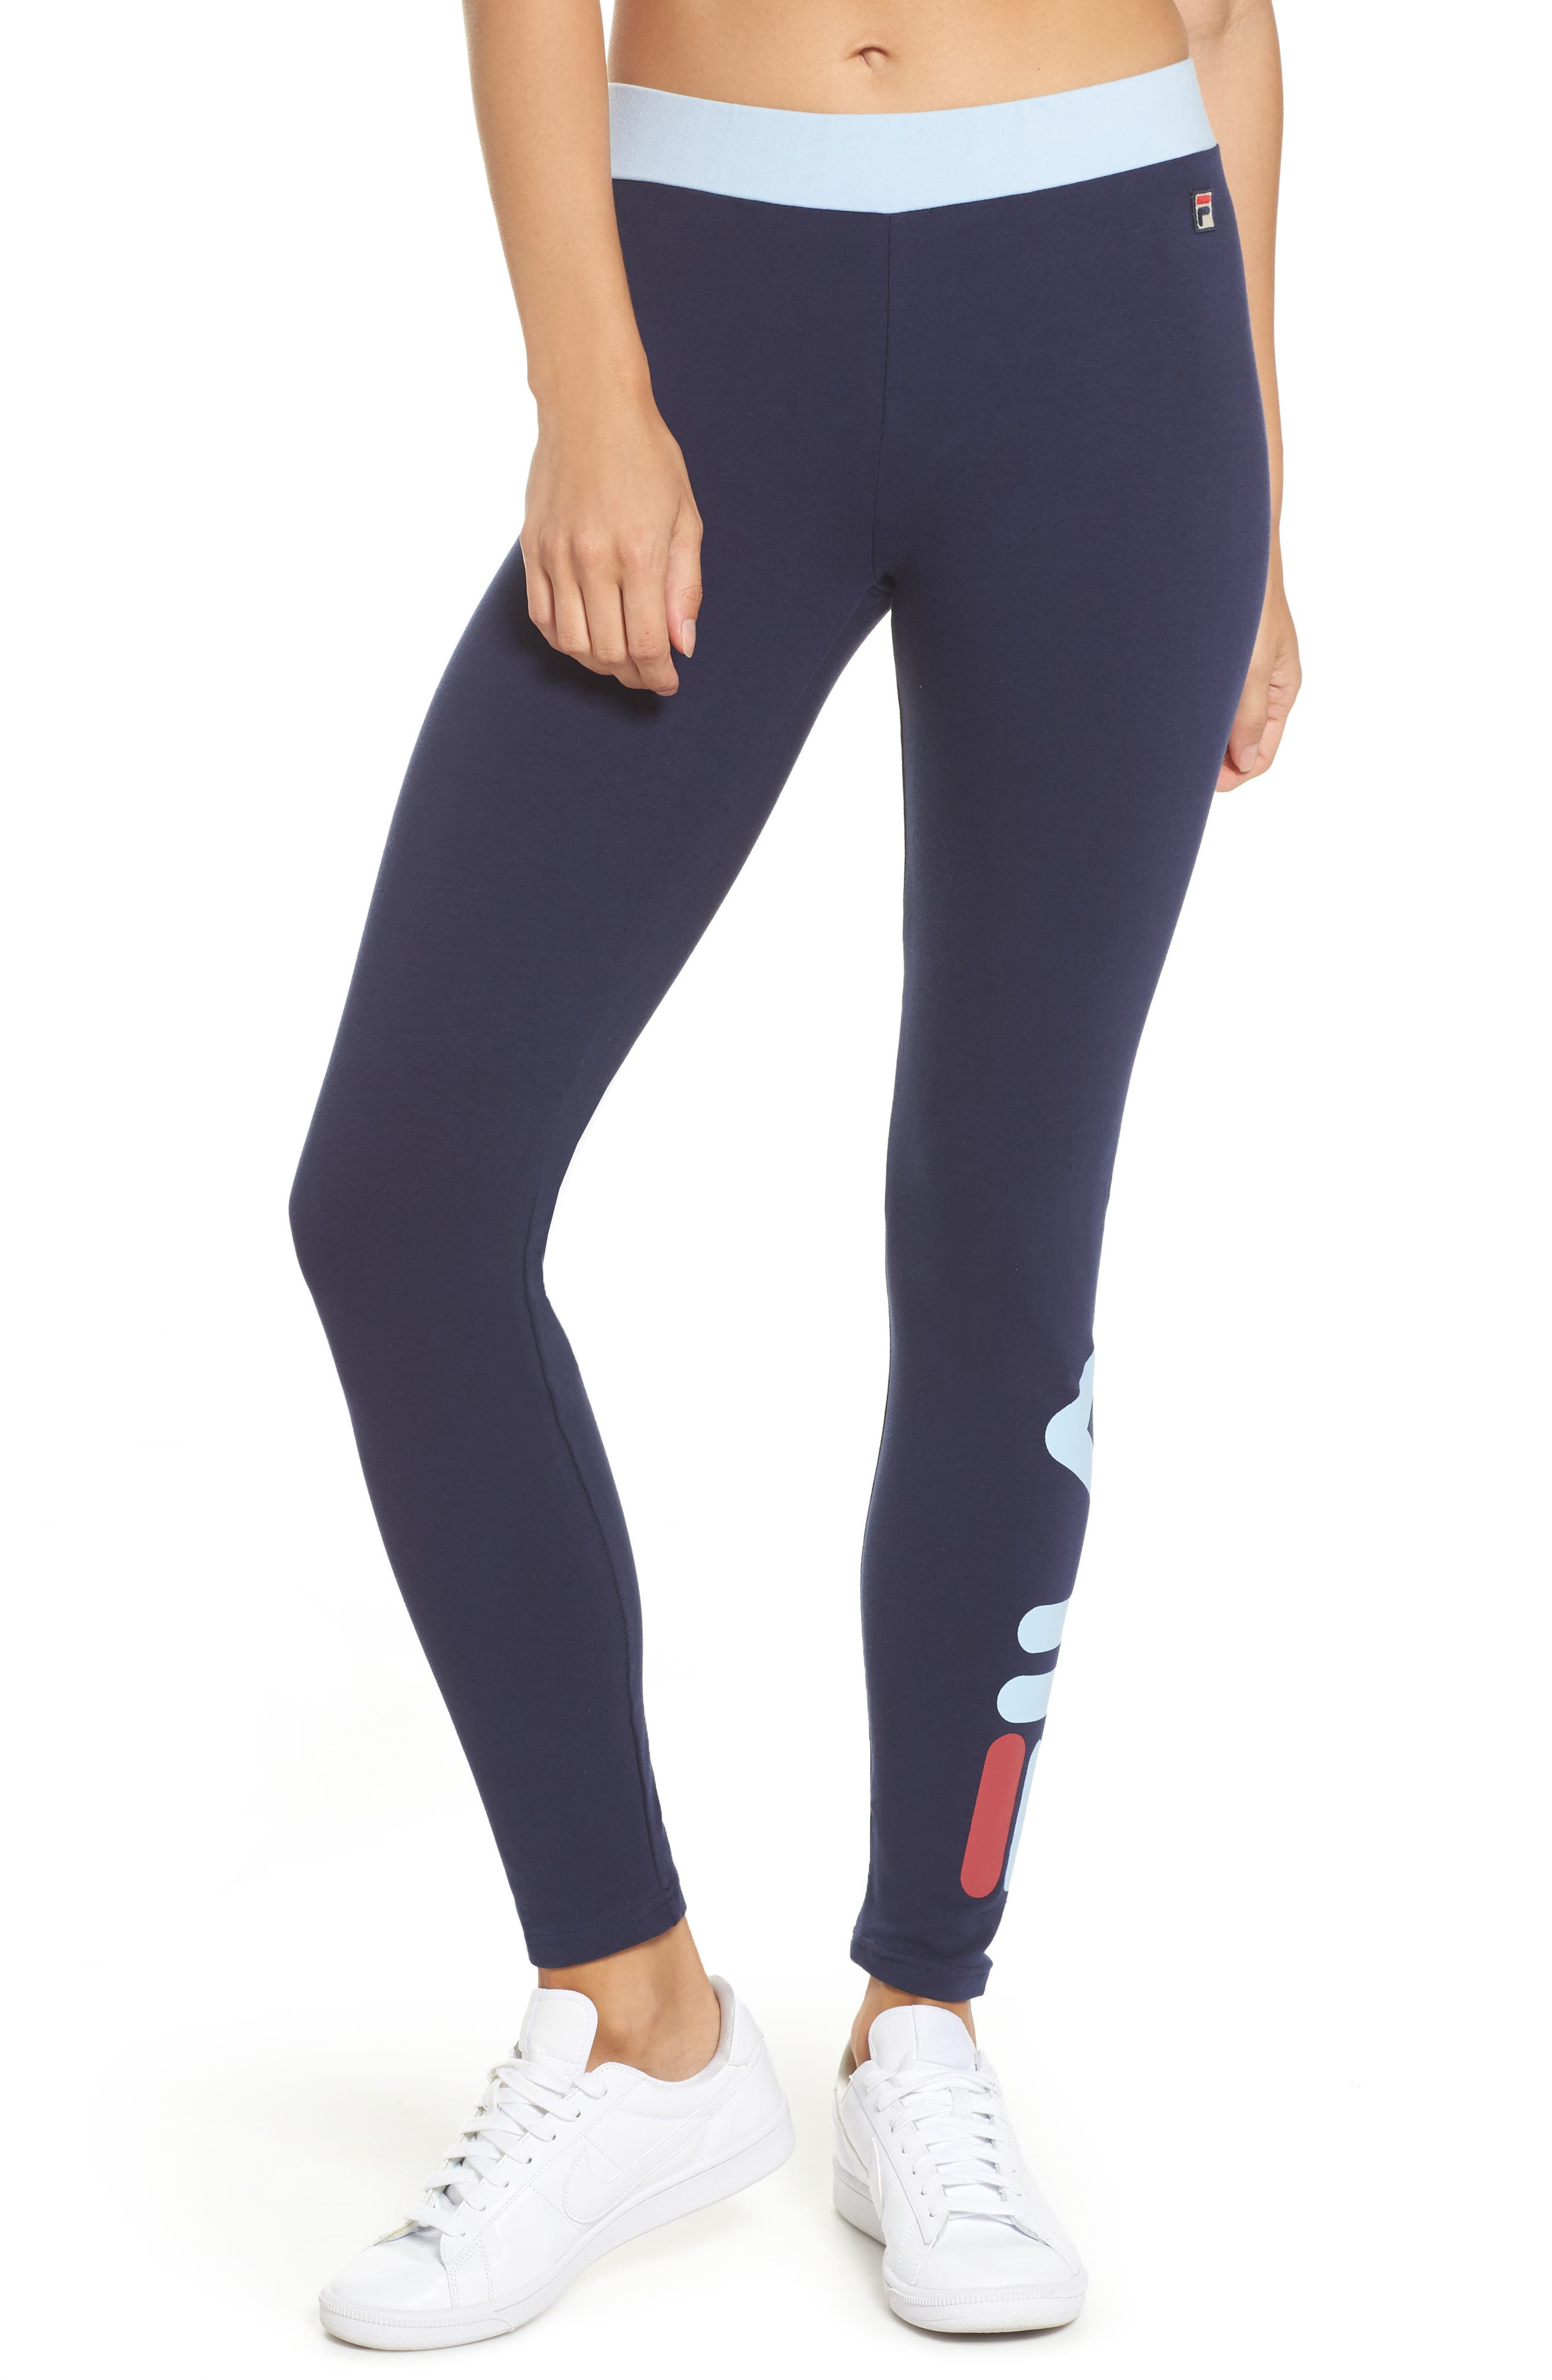 Imelda Training Tights,                             Main thumbnail 1, color,                             Navy/ Skyway/ Rio Red